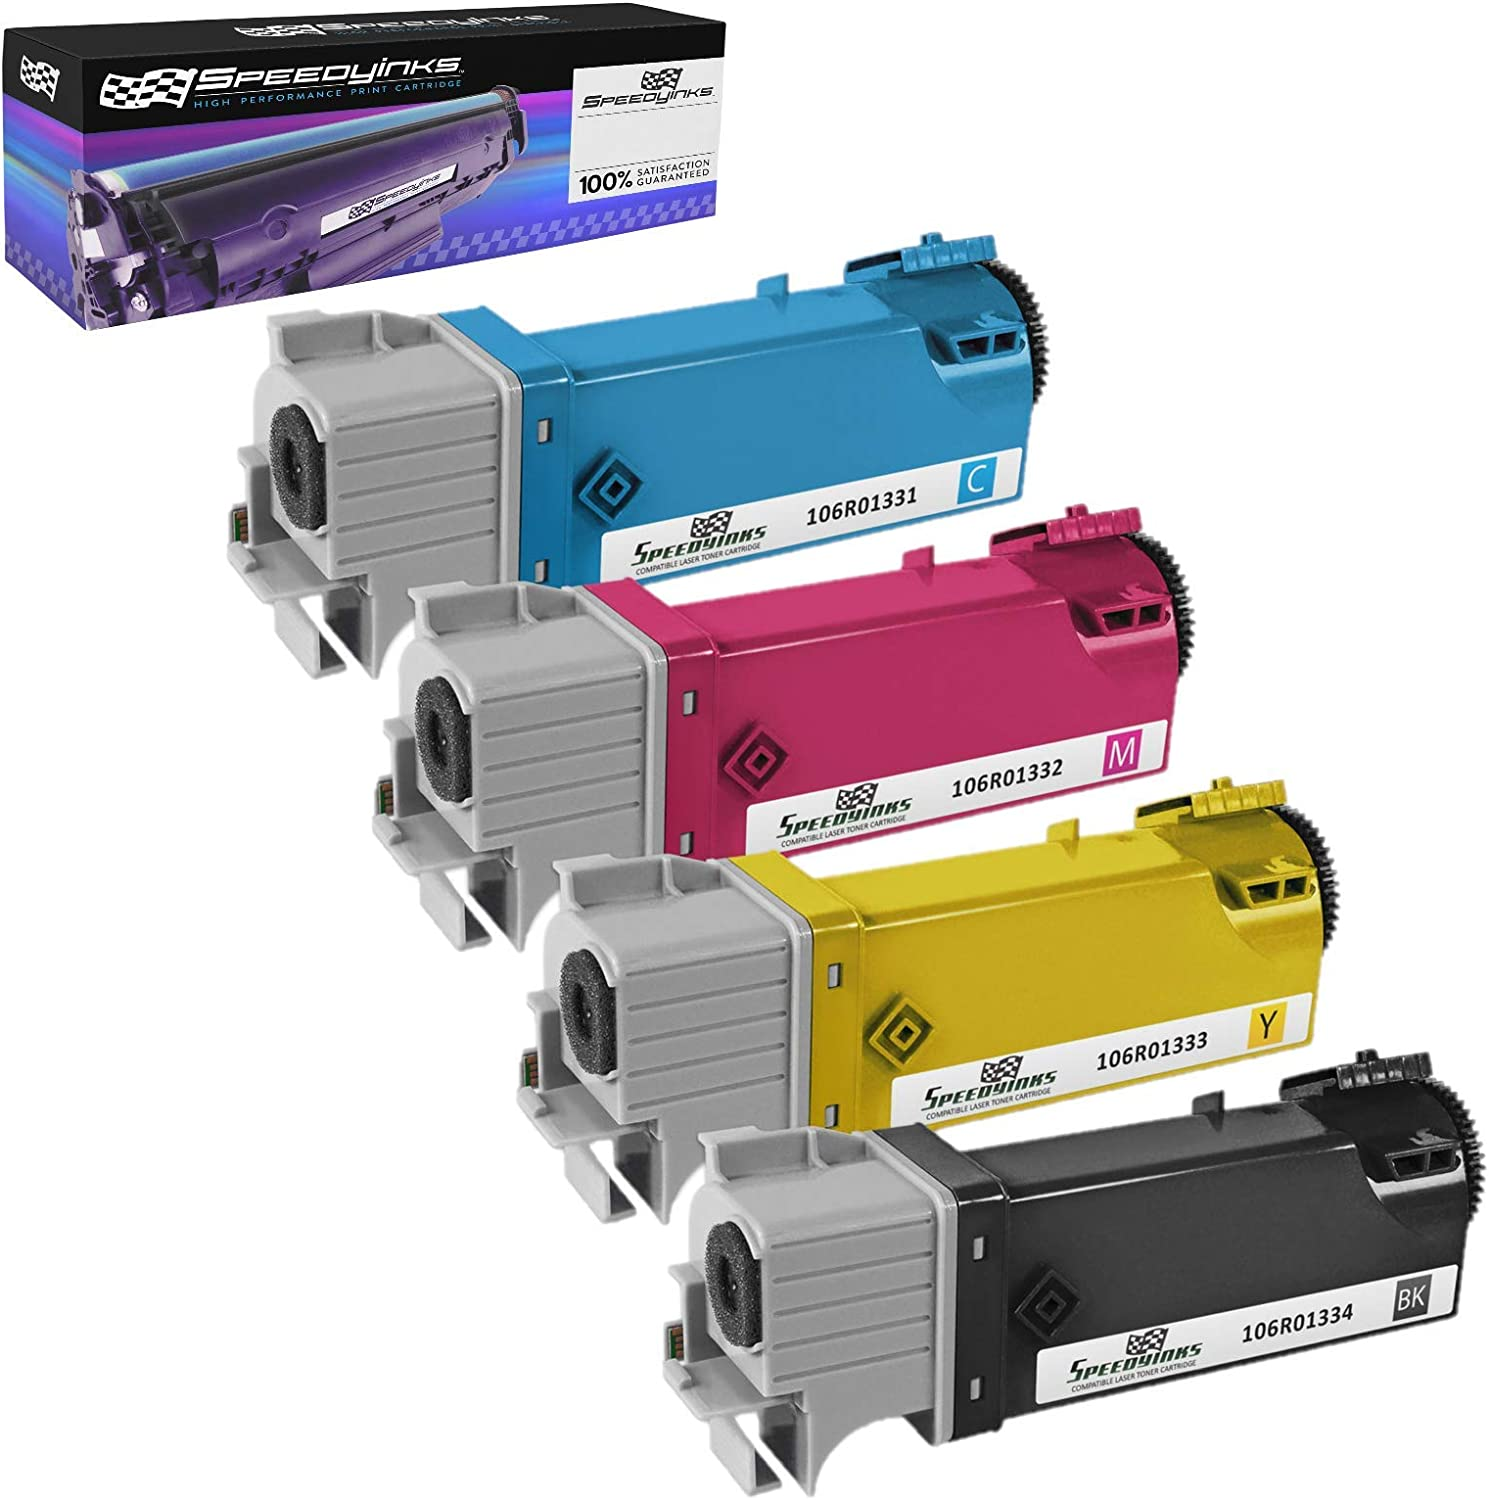 2,000 Pages Smart Print Supplies 106R1334 Black Compatible Toner Cartridge Replacement for Xerox Phaser 6125 Printers